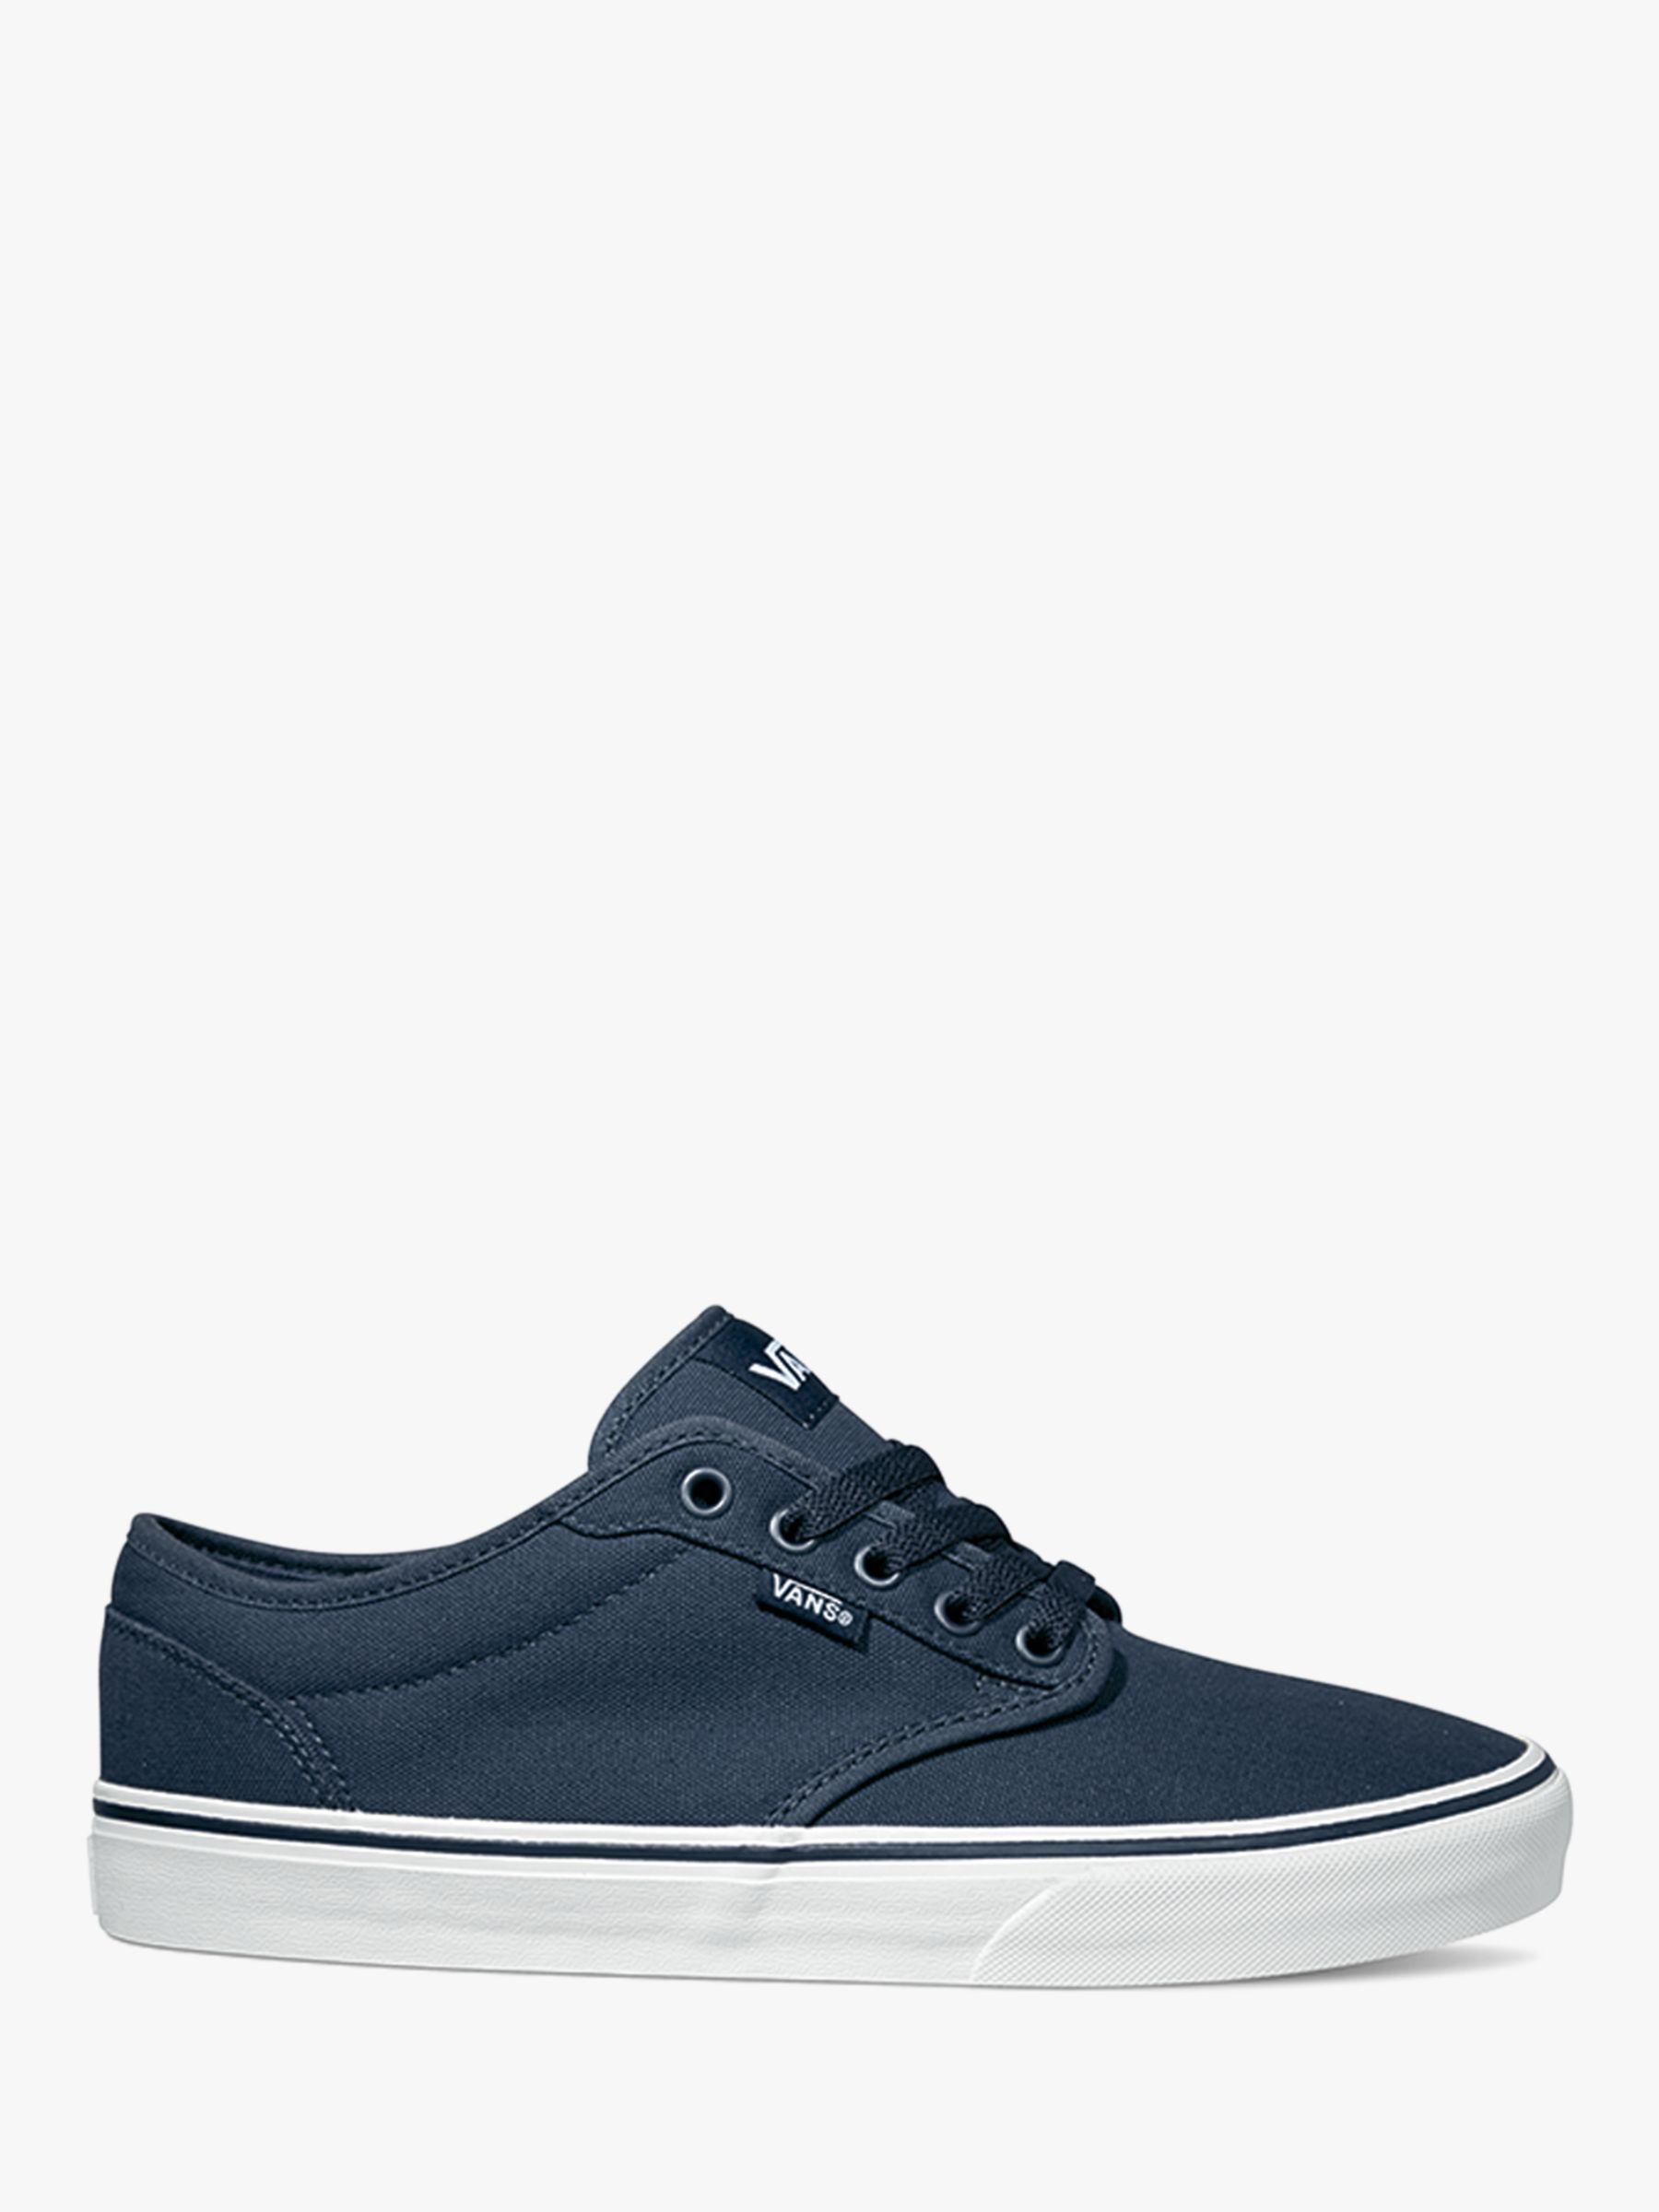 Vans Vans Atwood Canvas Trainers, Navy/White